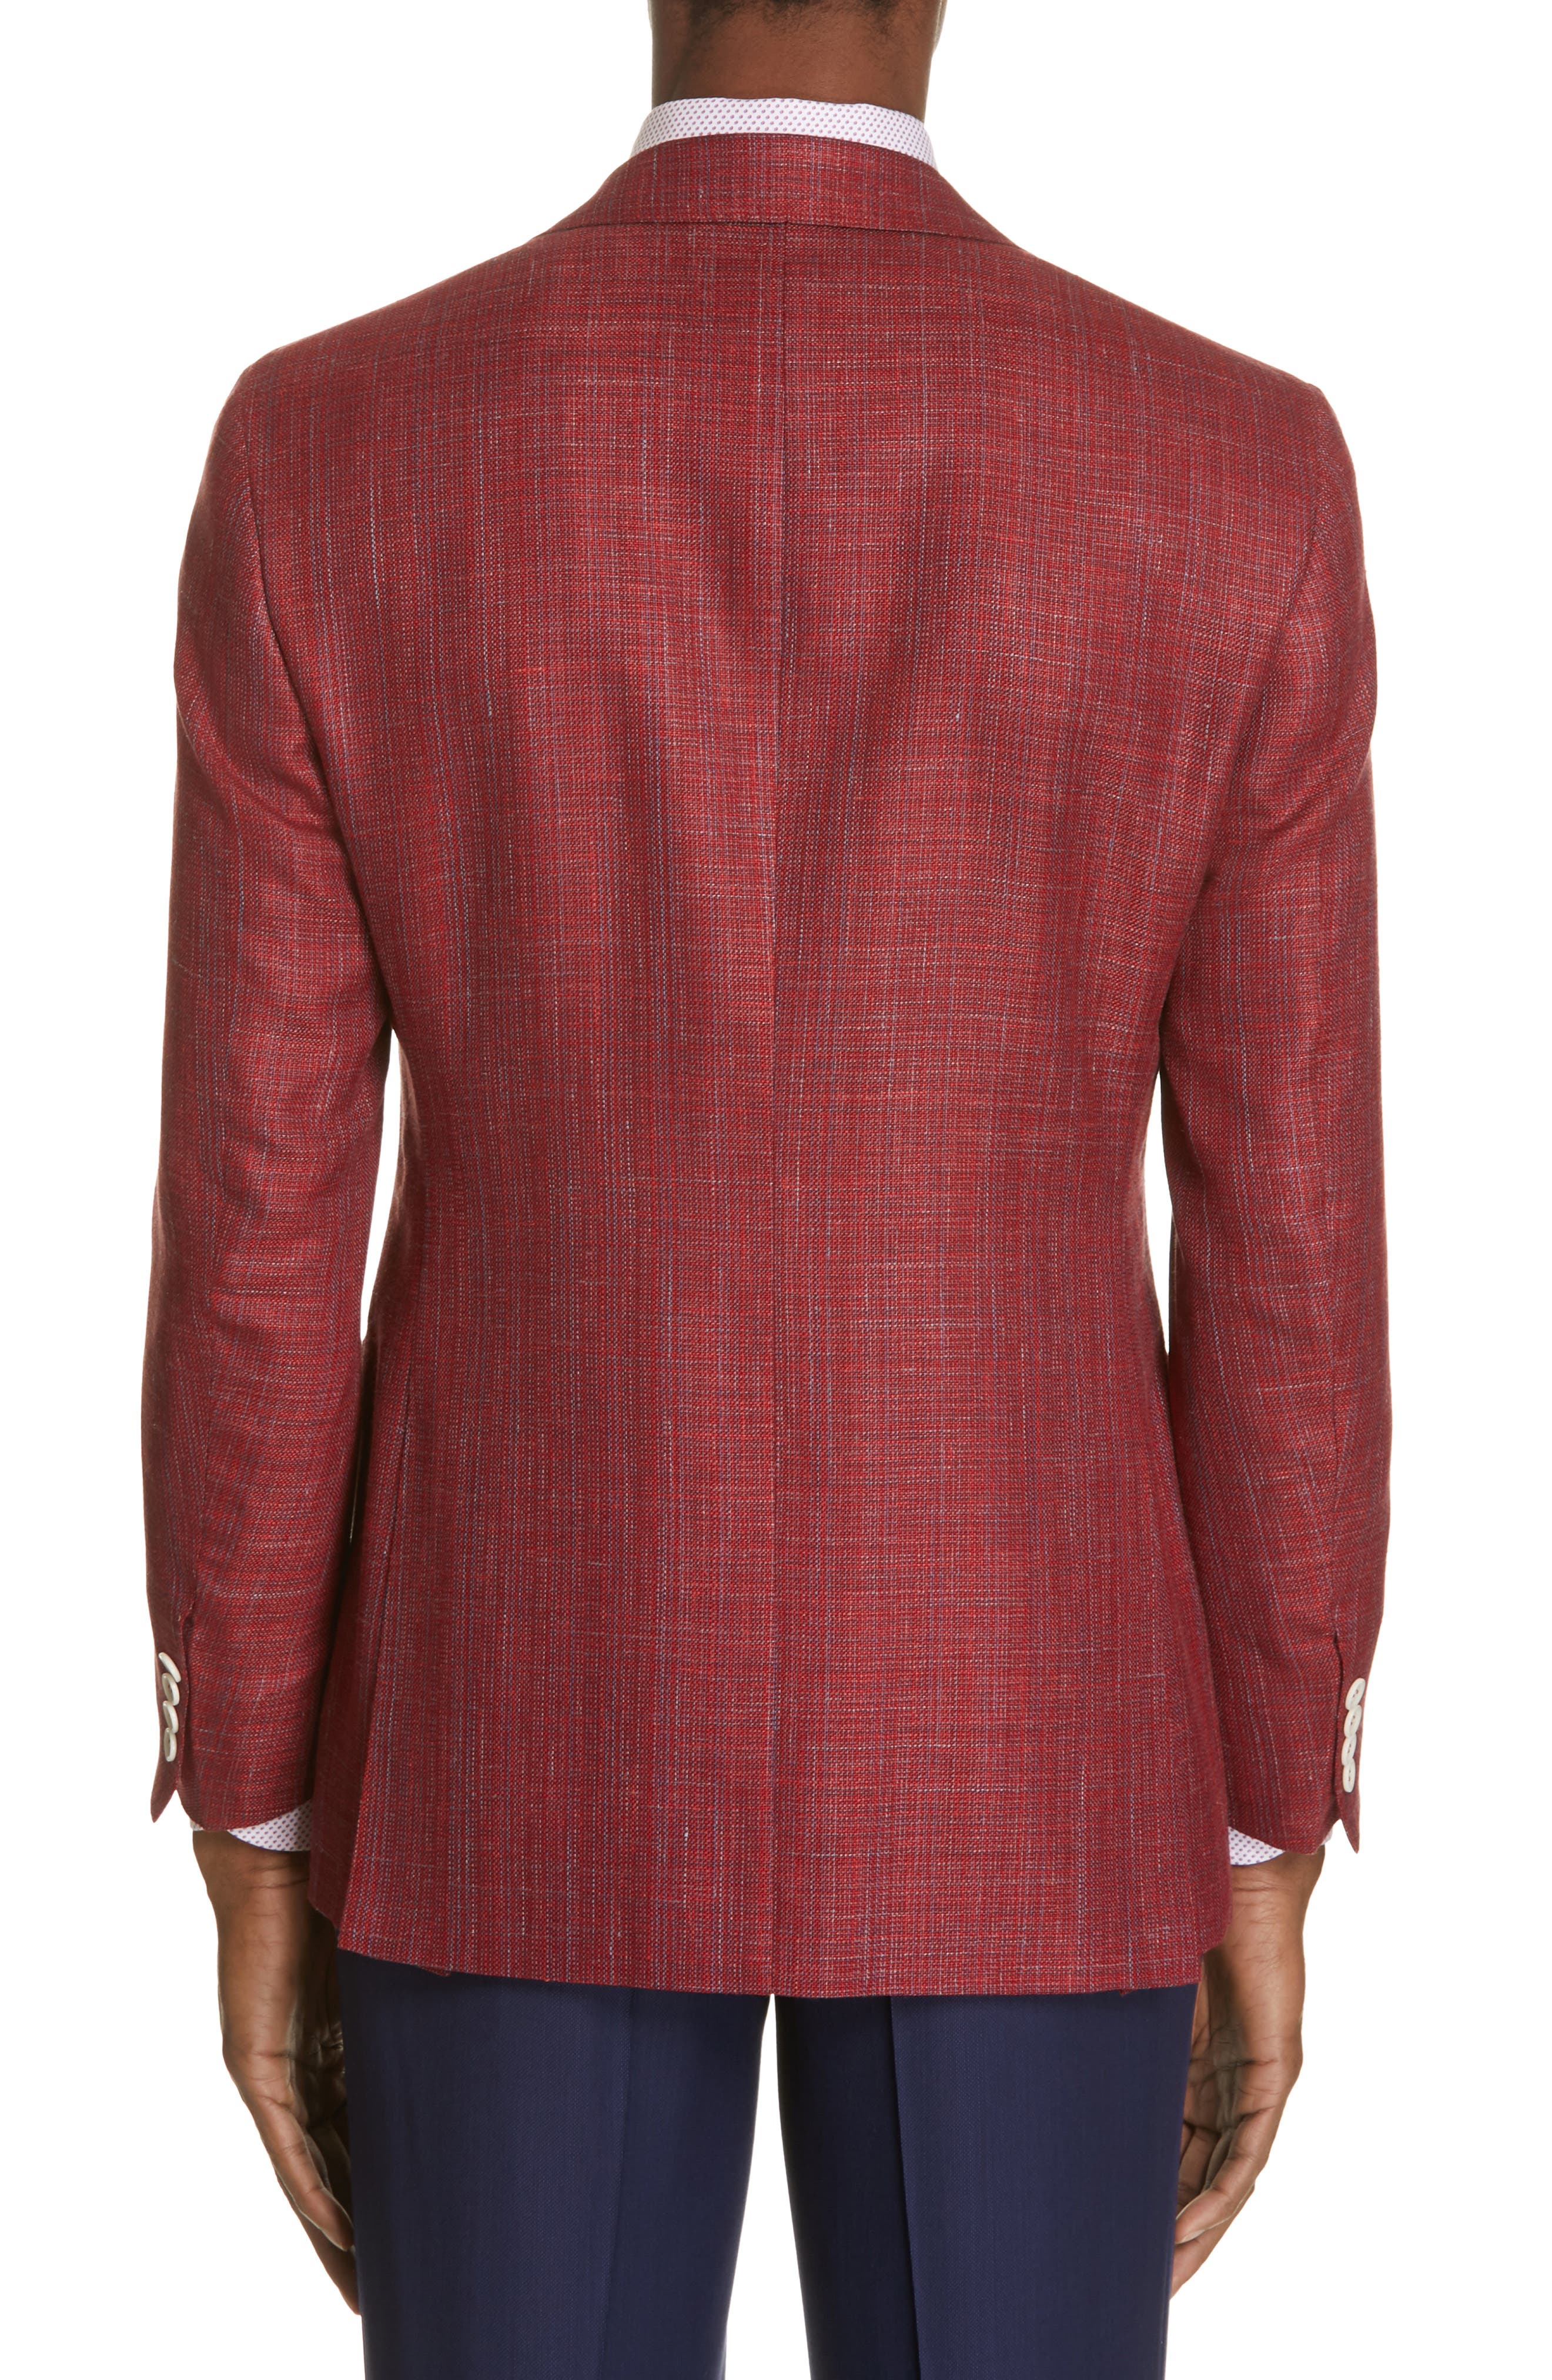 CANALI, Siena Classic Fit Wool, Silk & Linen Blend Sport Coat, Alternate thumbnail 2, color, RED